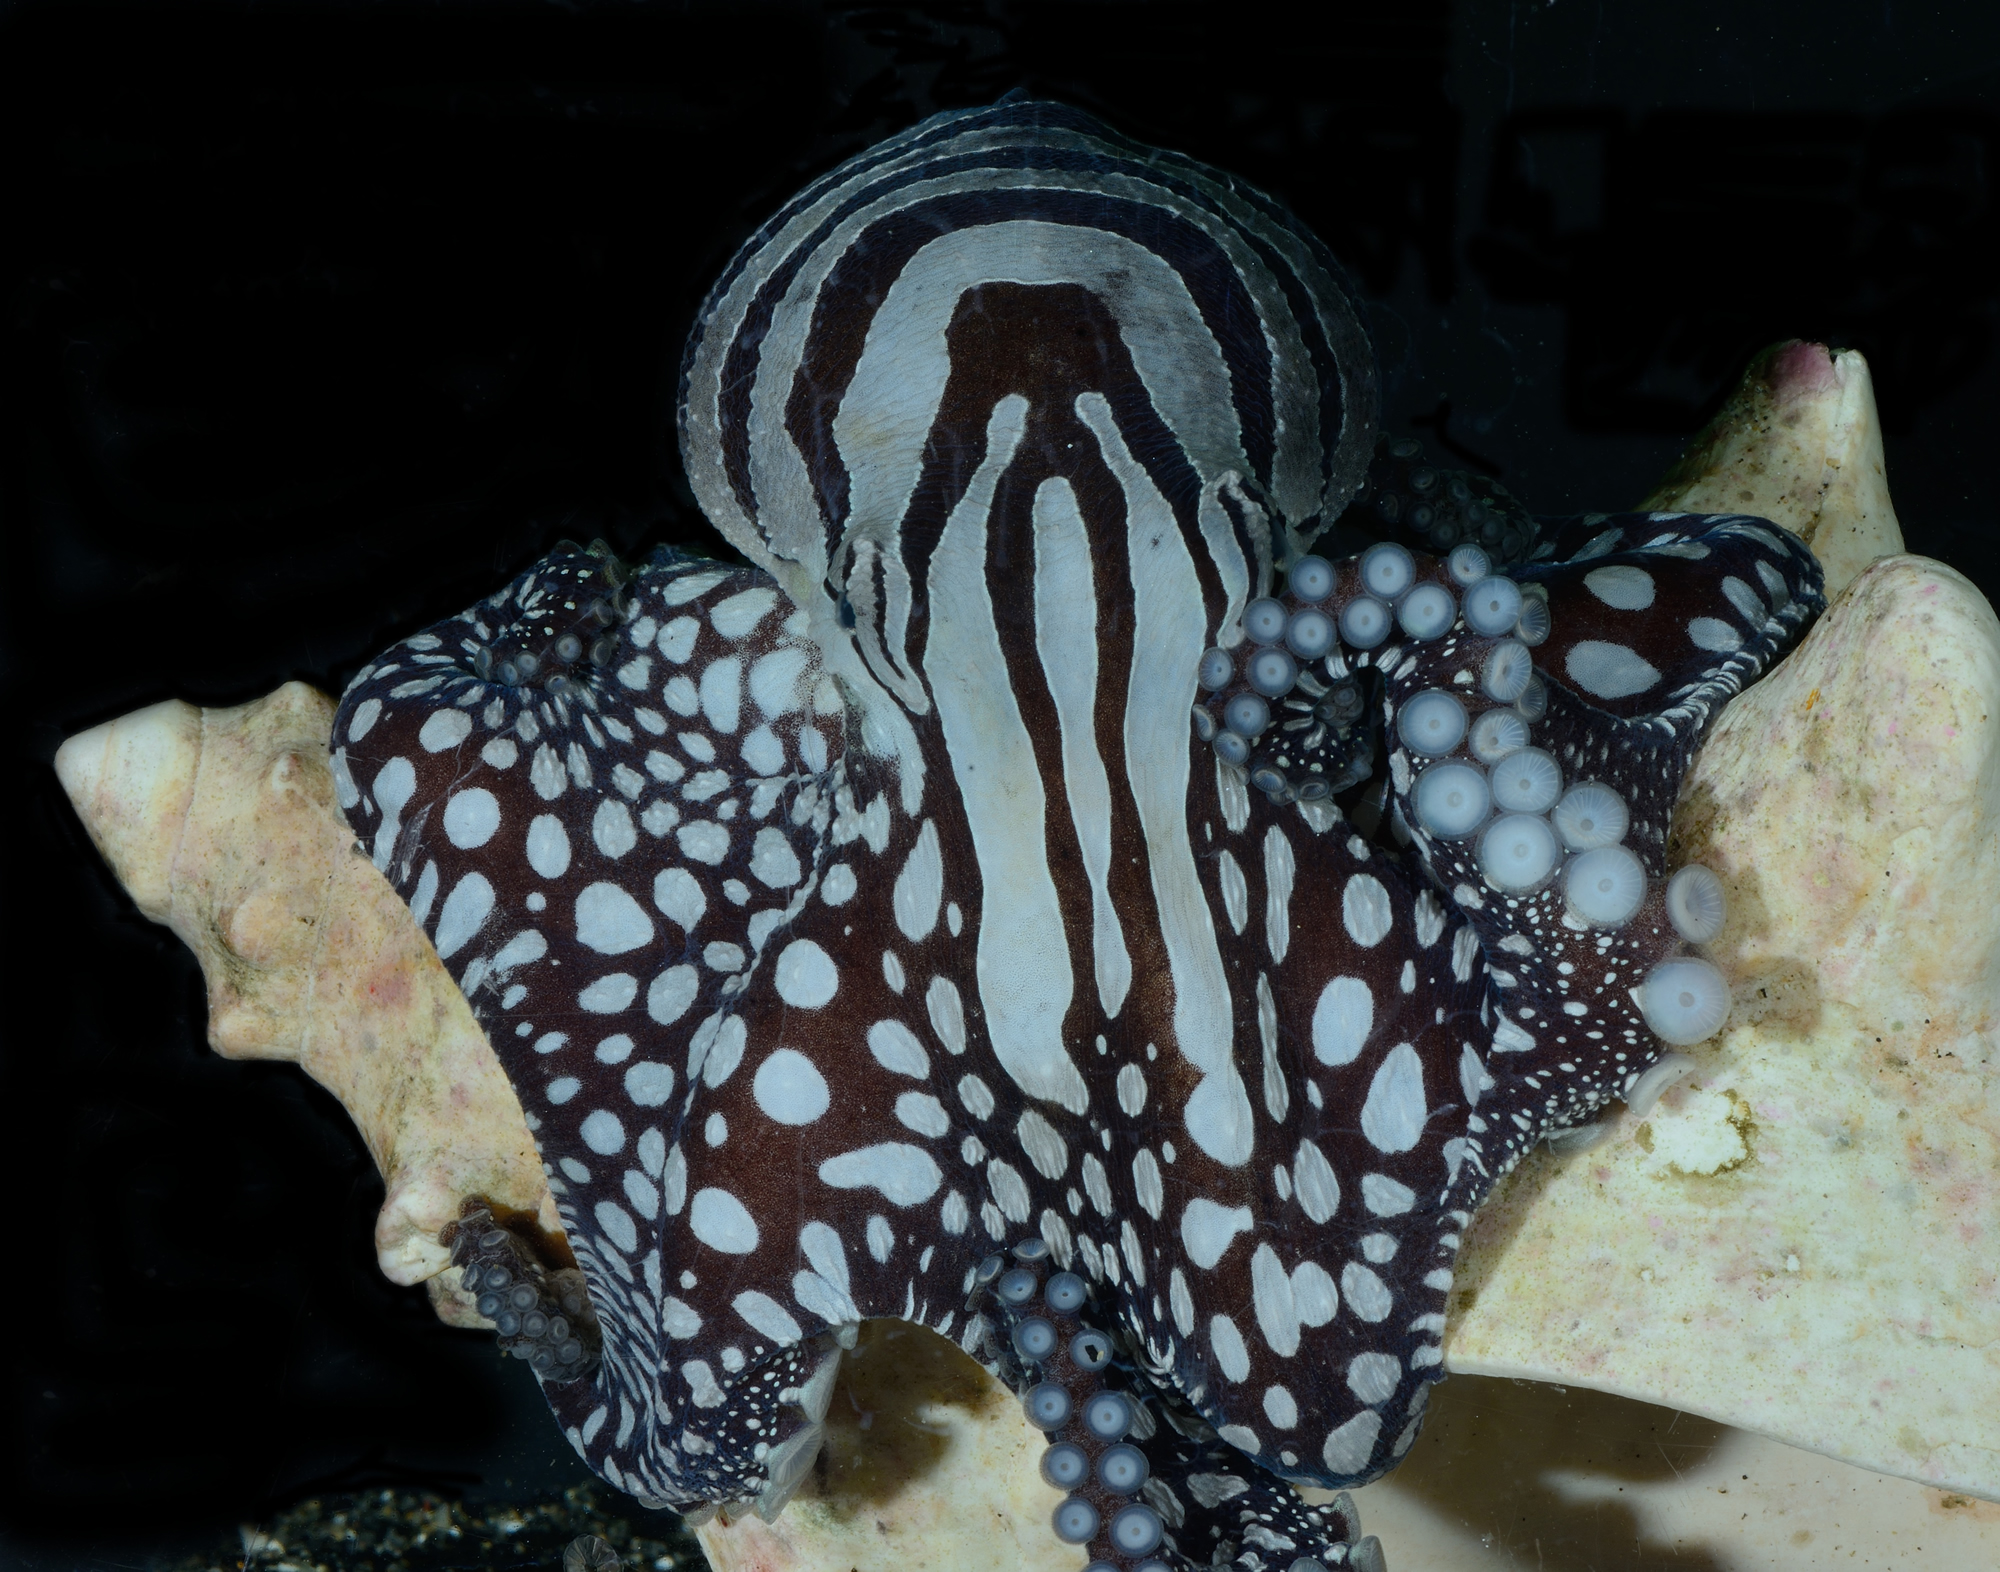 The unique color patters of the Larger Pacific Striped Octopus – Photo by Roy Caldwell